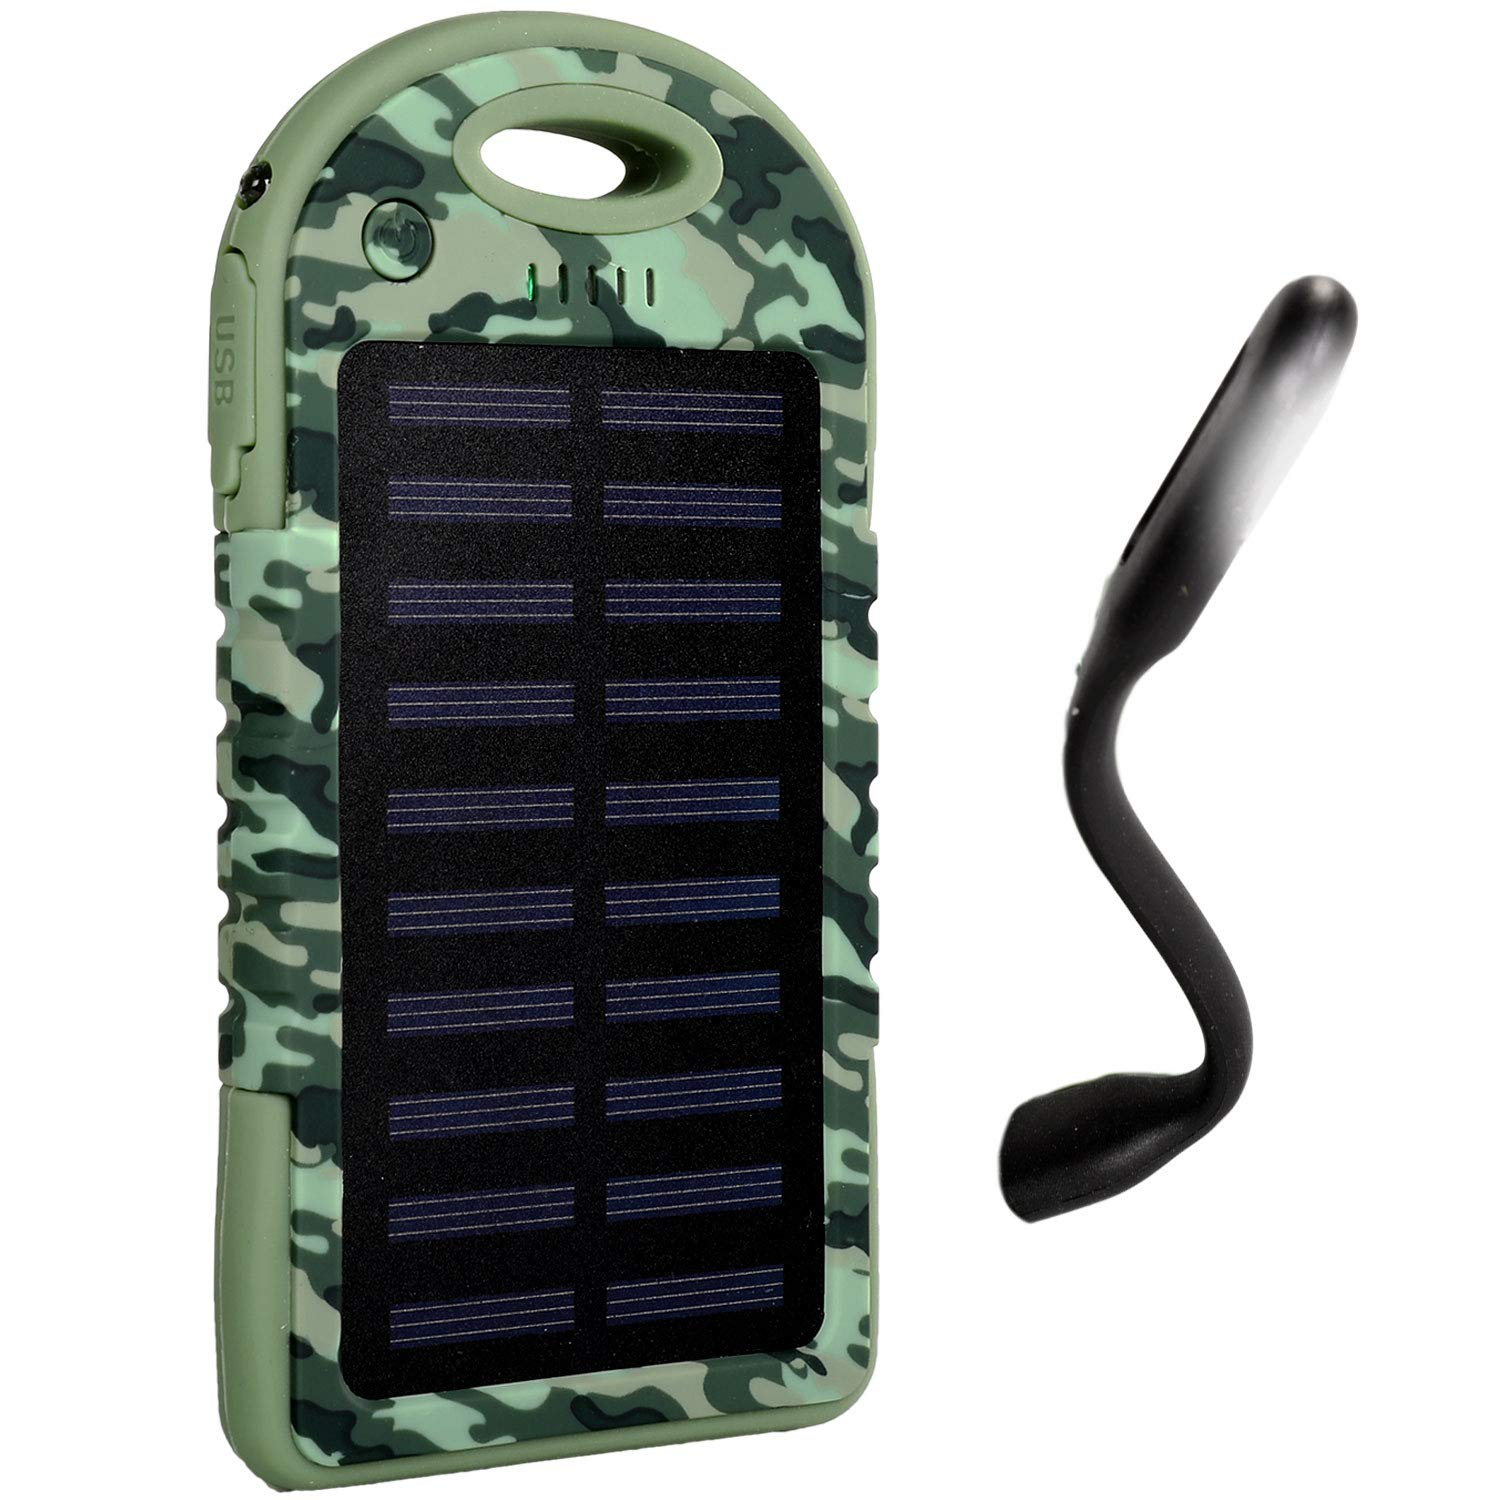 iBoost 5000 mAh Portable Solar Smartphone Power Pack Bank Battery Charger, 2 USB Ports, Use iPhone, Samsung, Android Windows Phones, GoPro Camera, GPS Device, Free Reading Light (Camo)